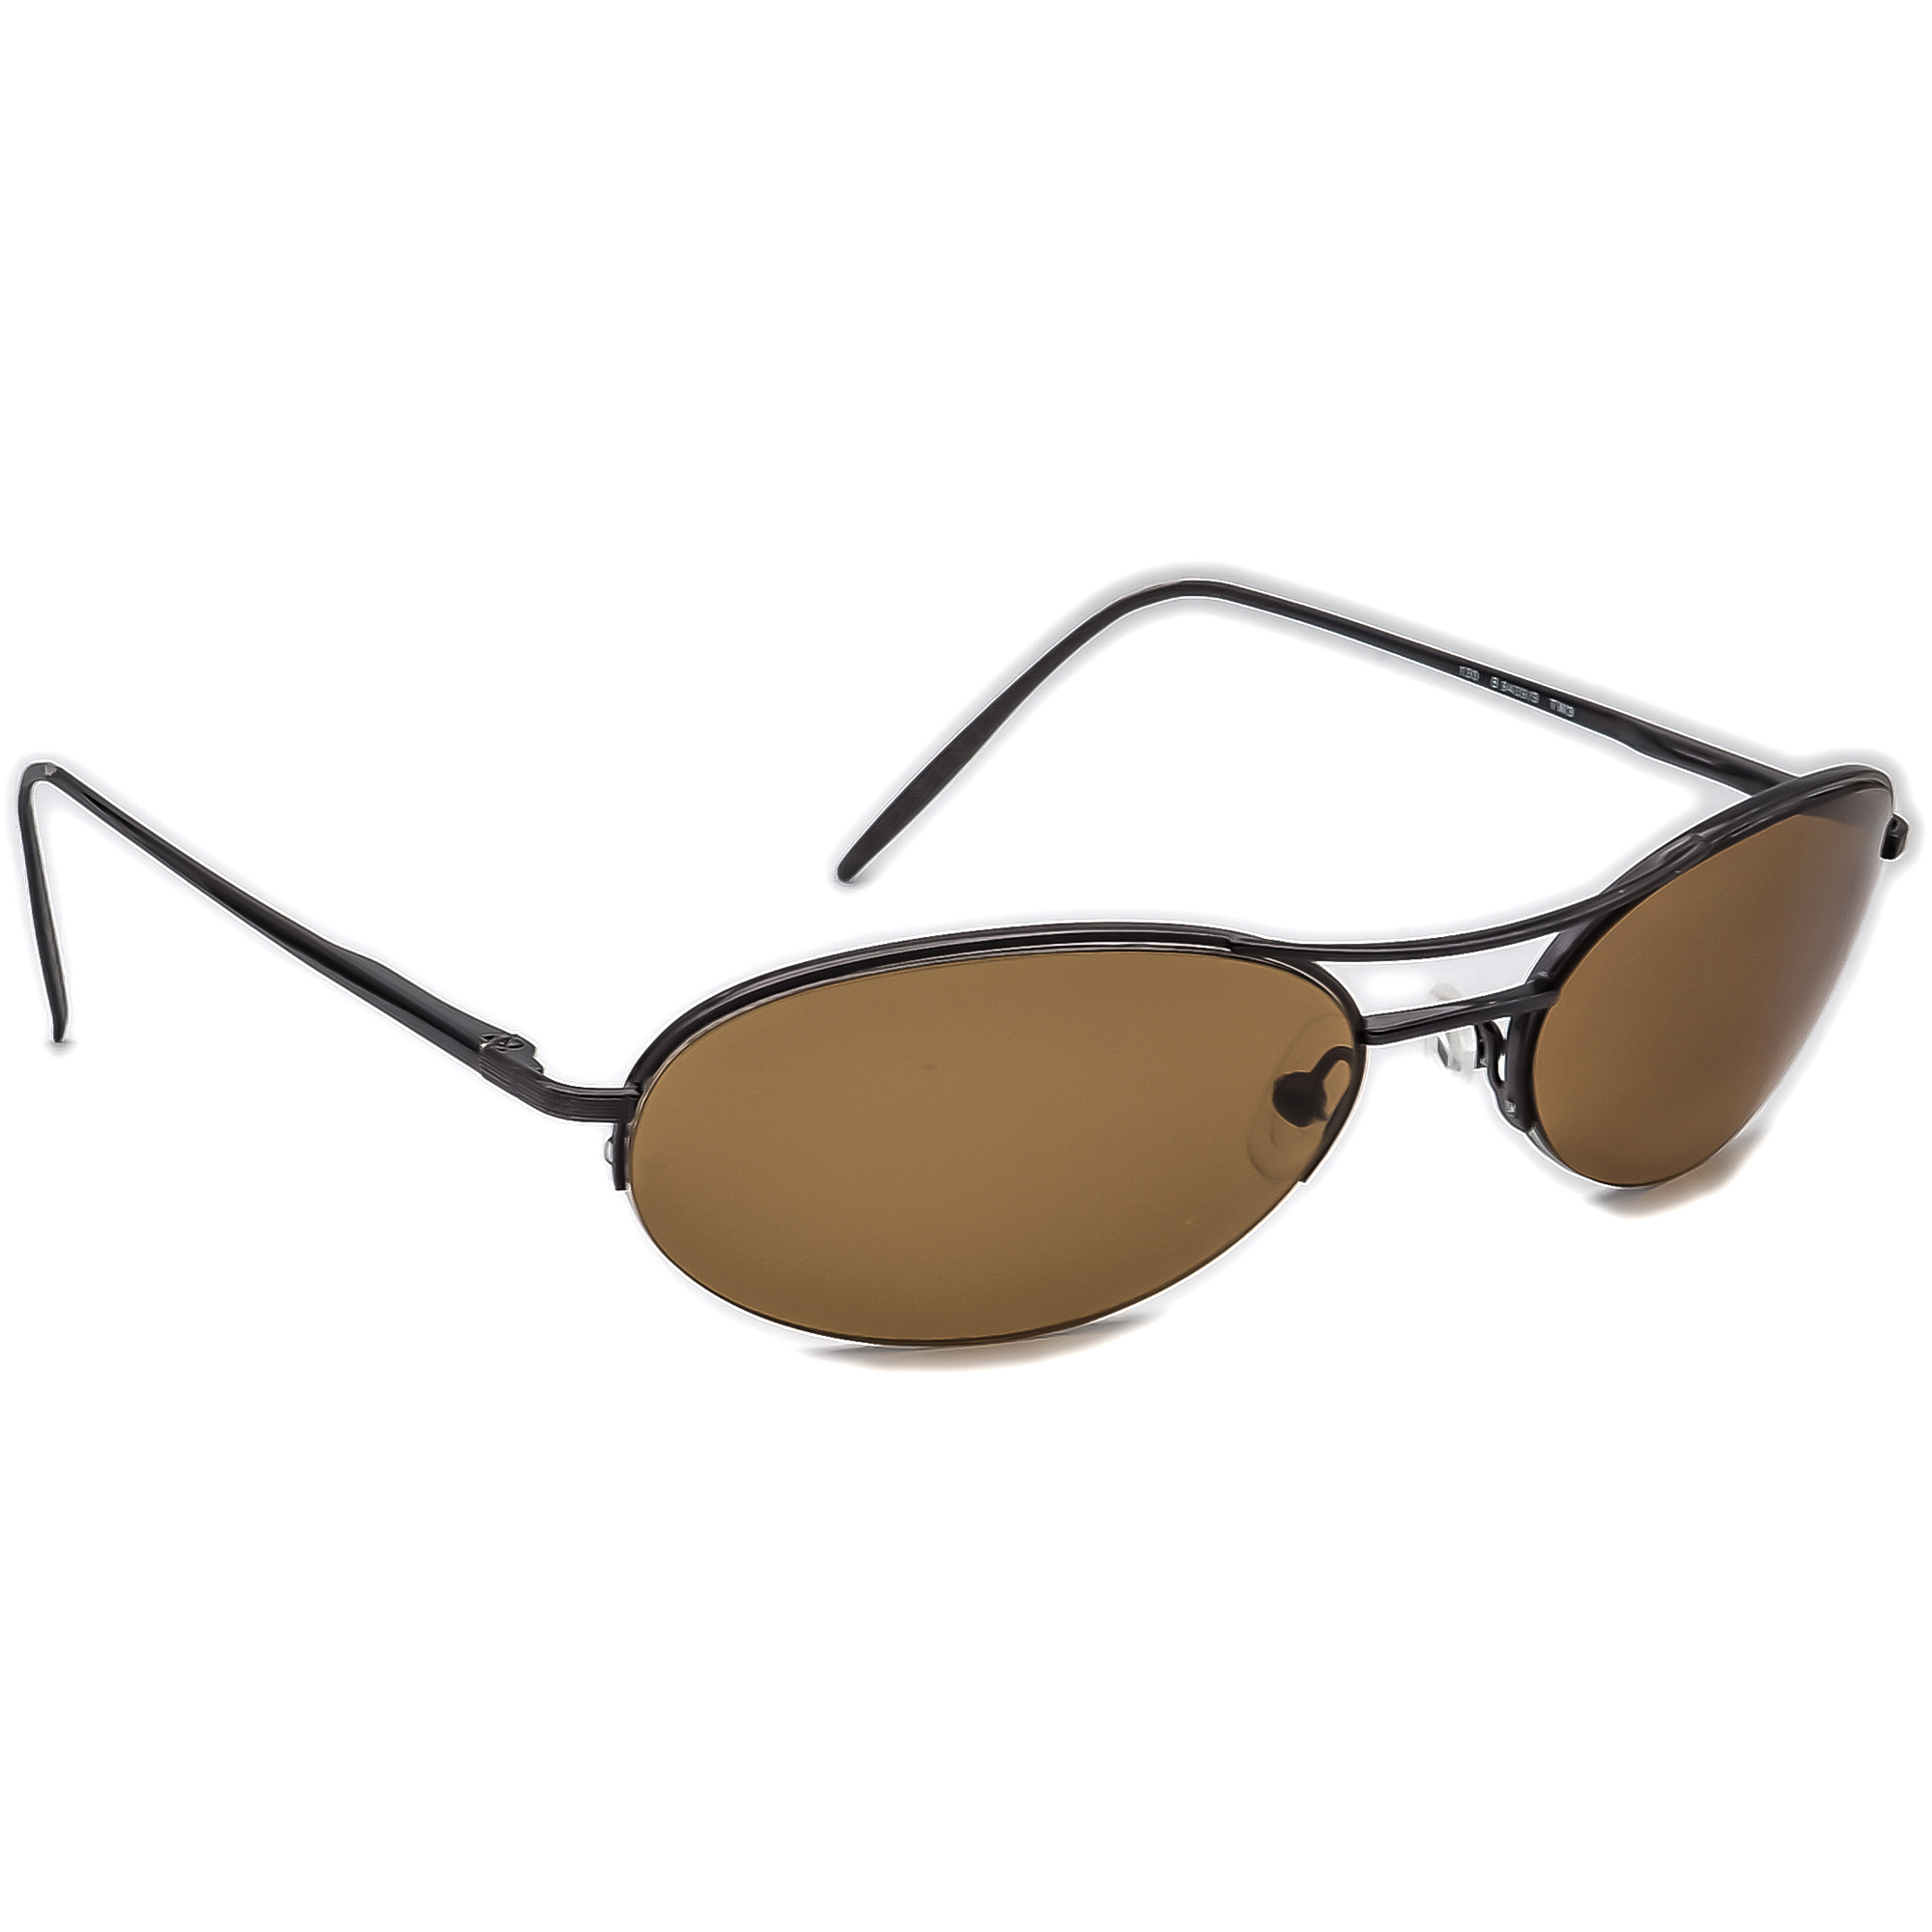 Burberry B 9409/S TW3 Sunglasses Frame Only